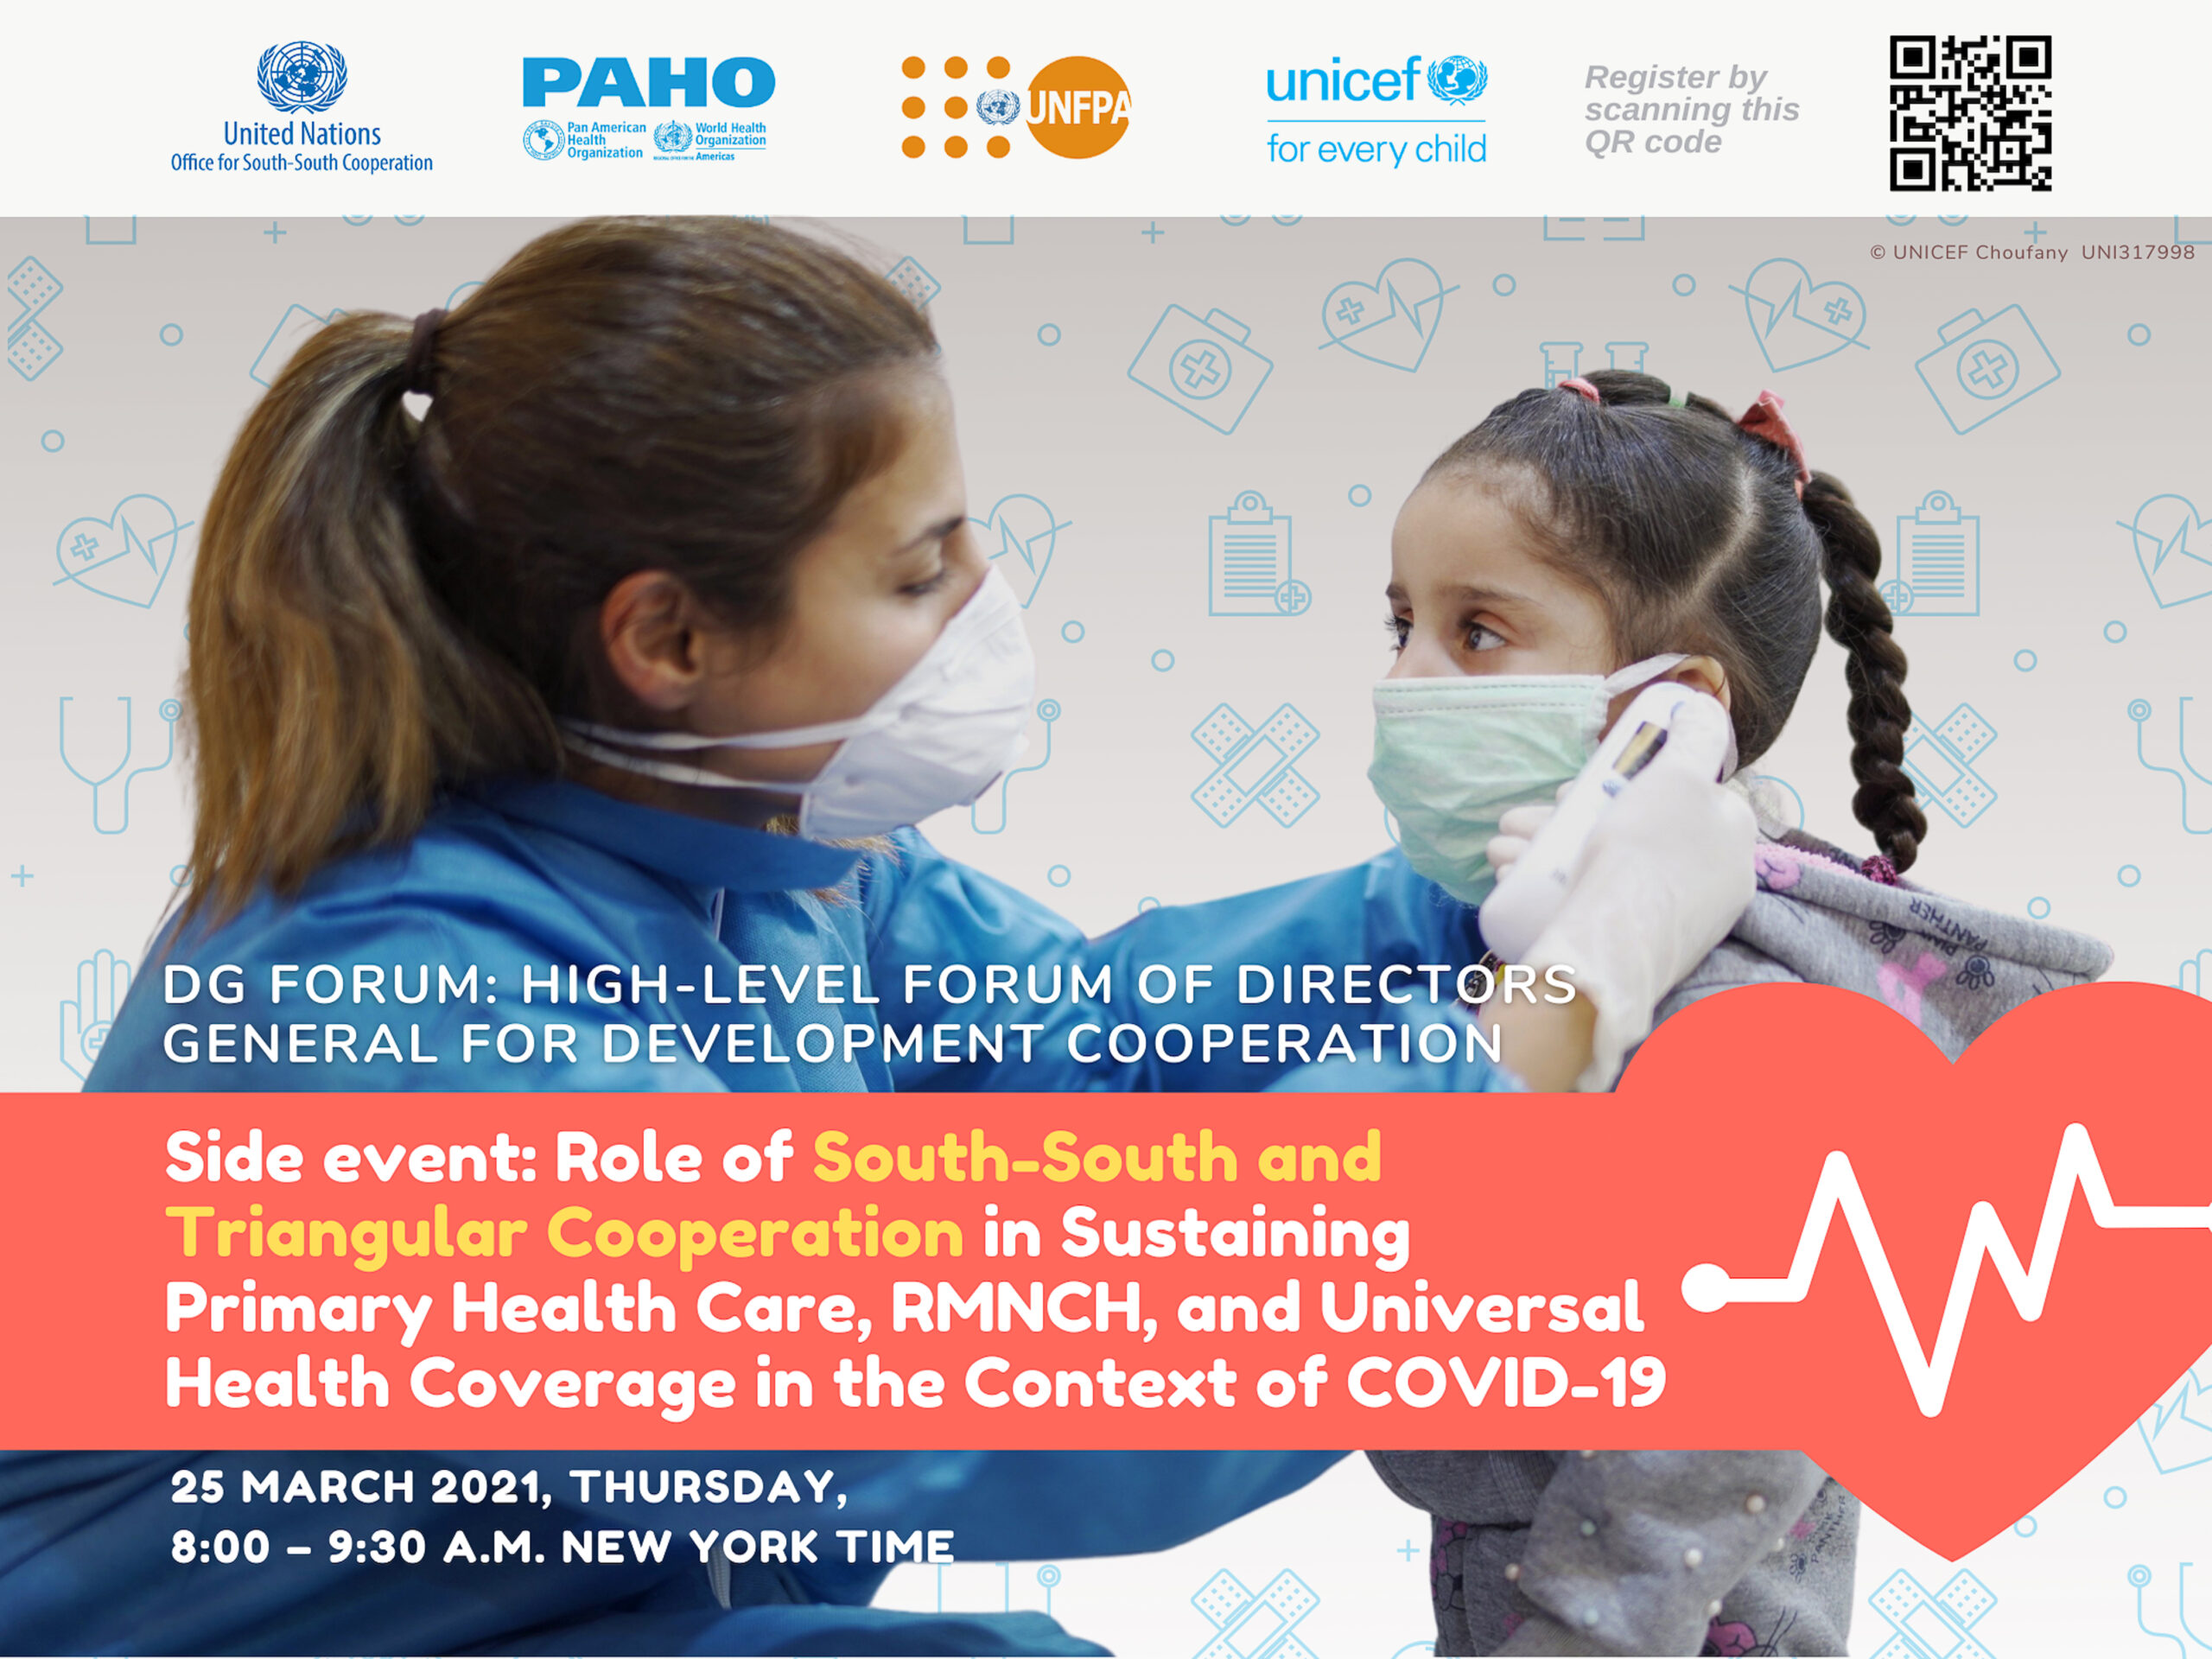 DG Forum Side-Event: Role of SSTC in Sustaining Primary Health Care, RMNCH, and Universal Health Coverage in the Context of COVID-19